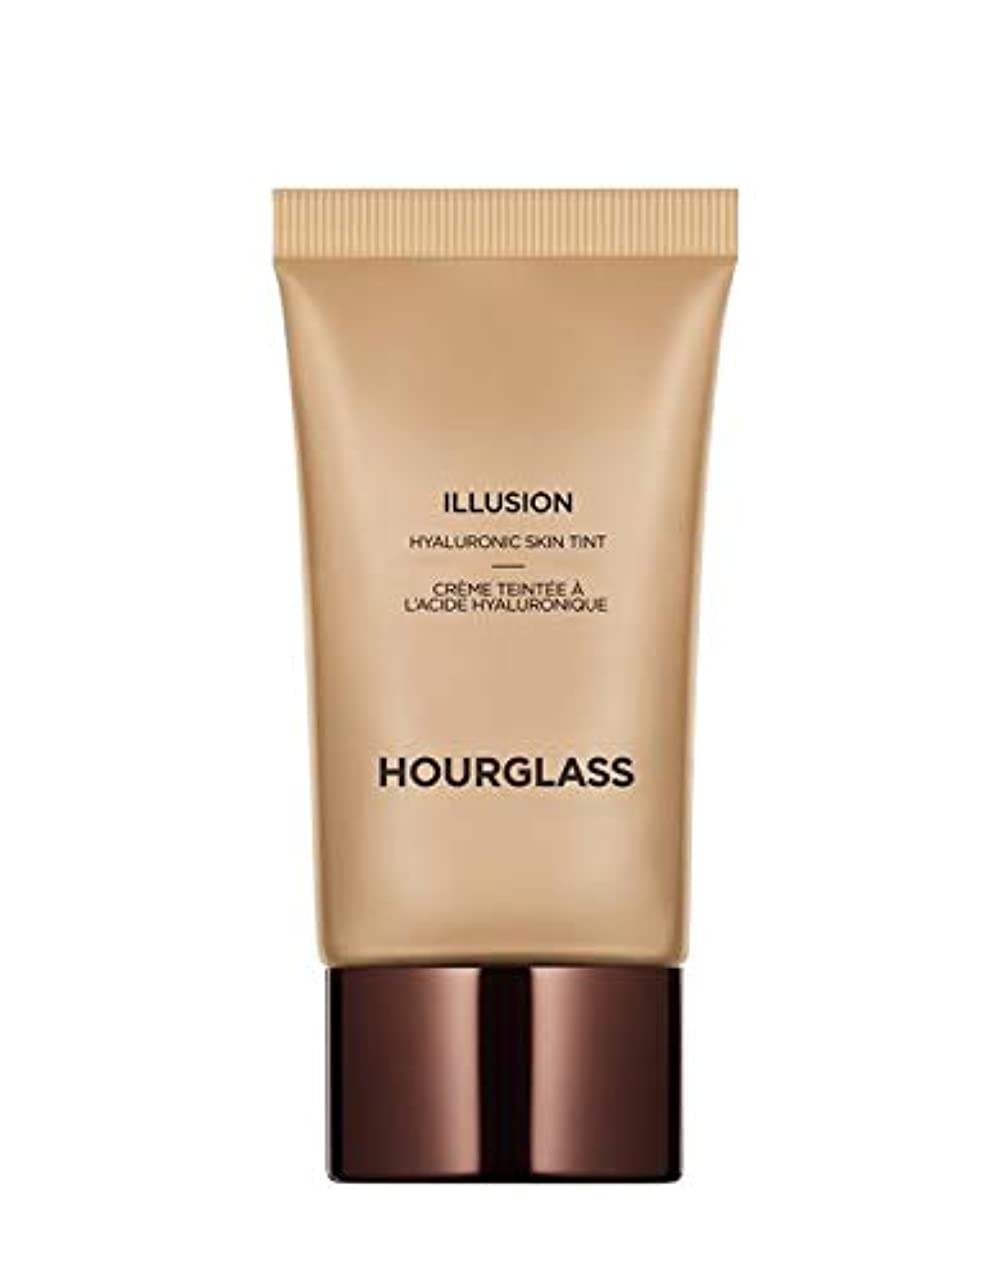 ホラー考えた法律によりHOURGLASS Illusion® Hyaluronic Skin Tint 1 oz/ 30 mL (Warm Ivory)